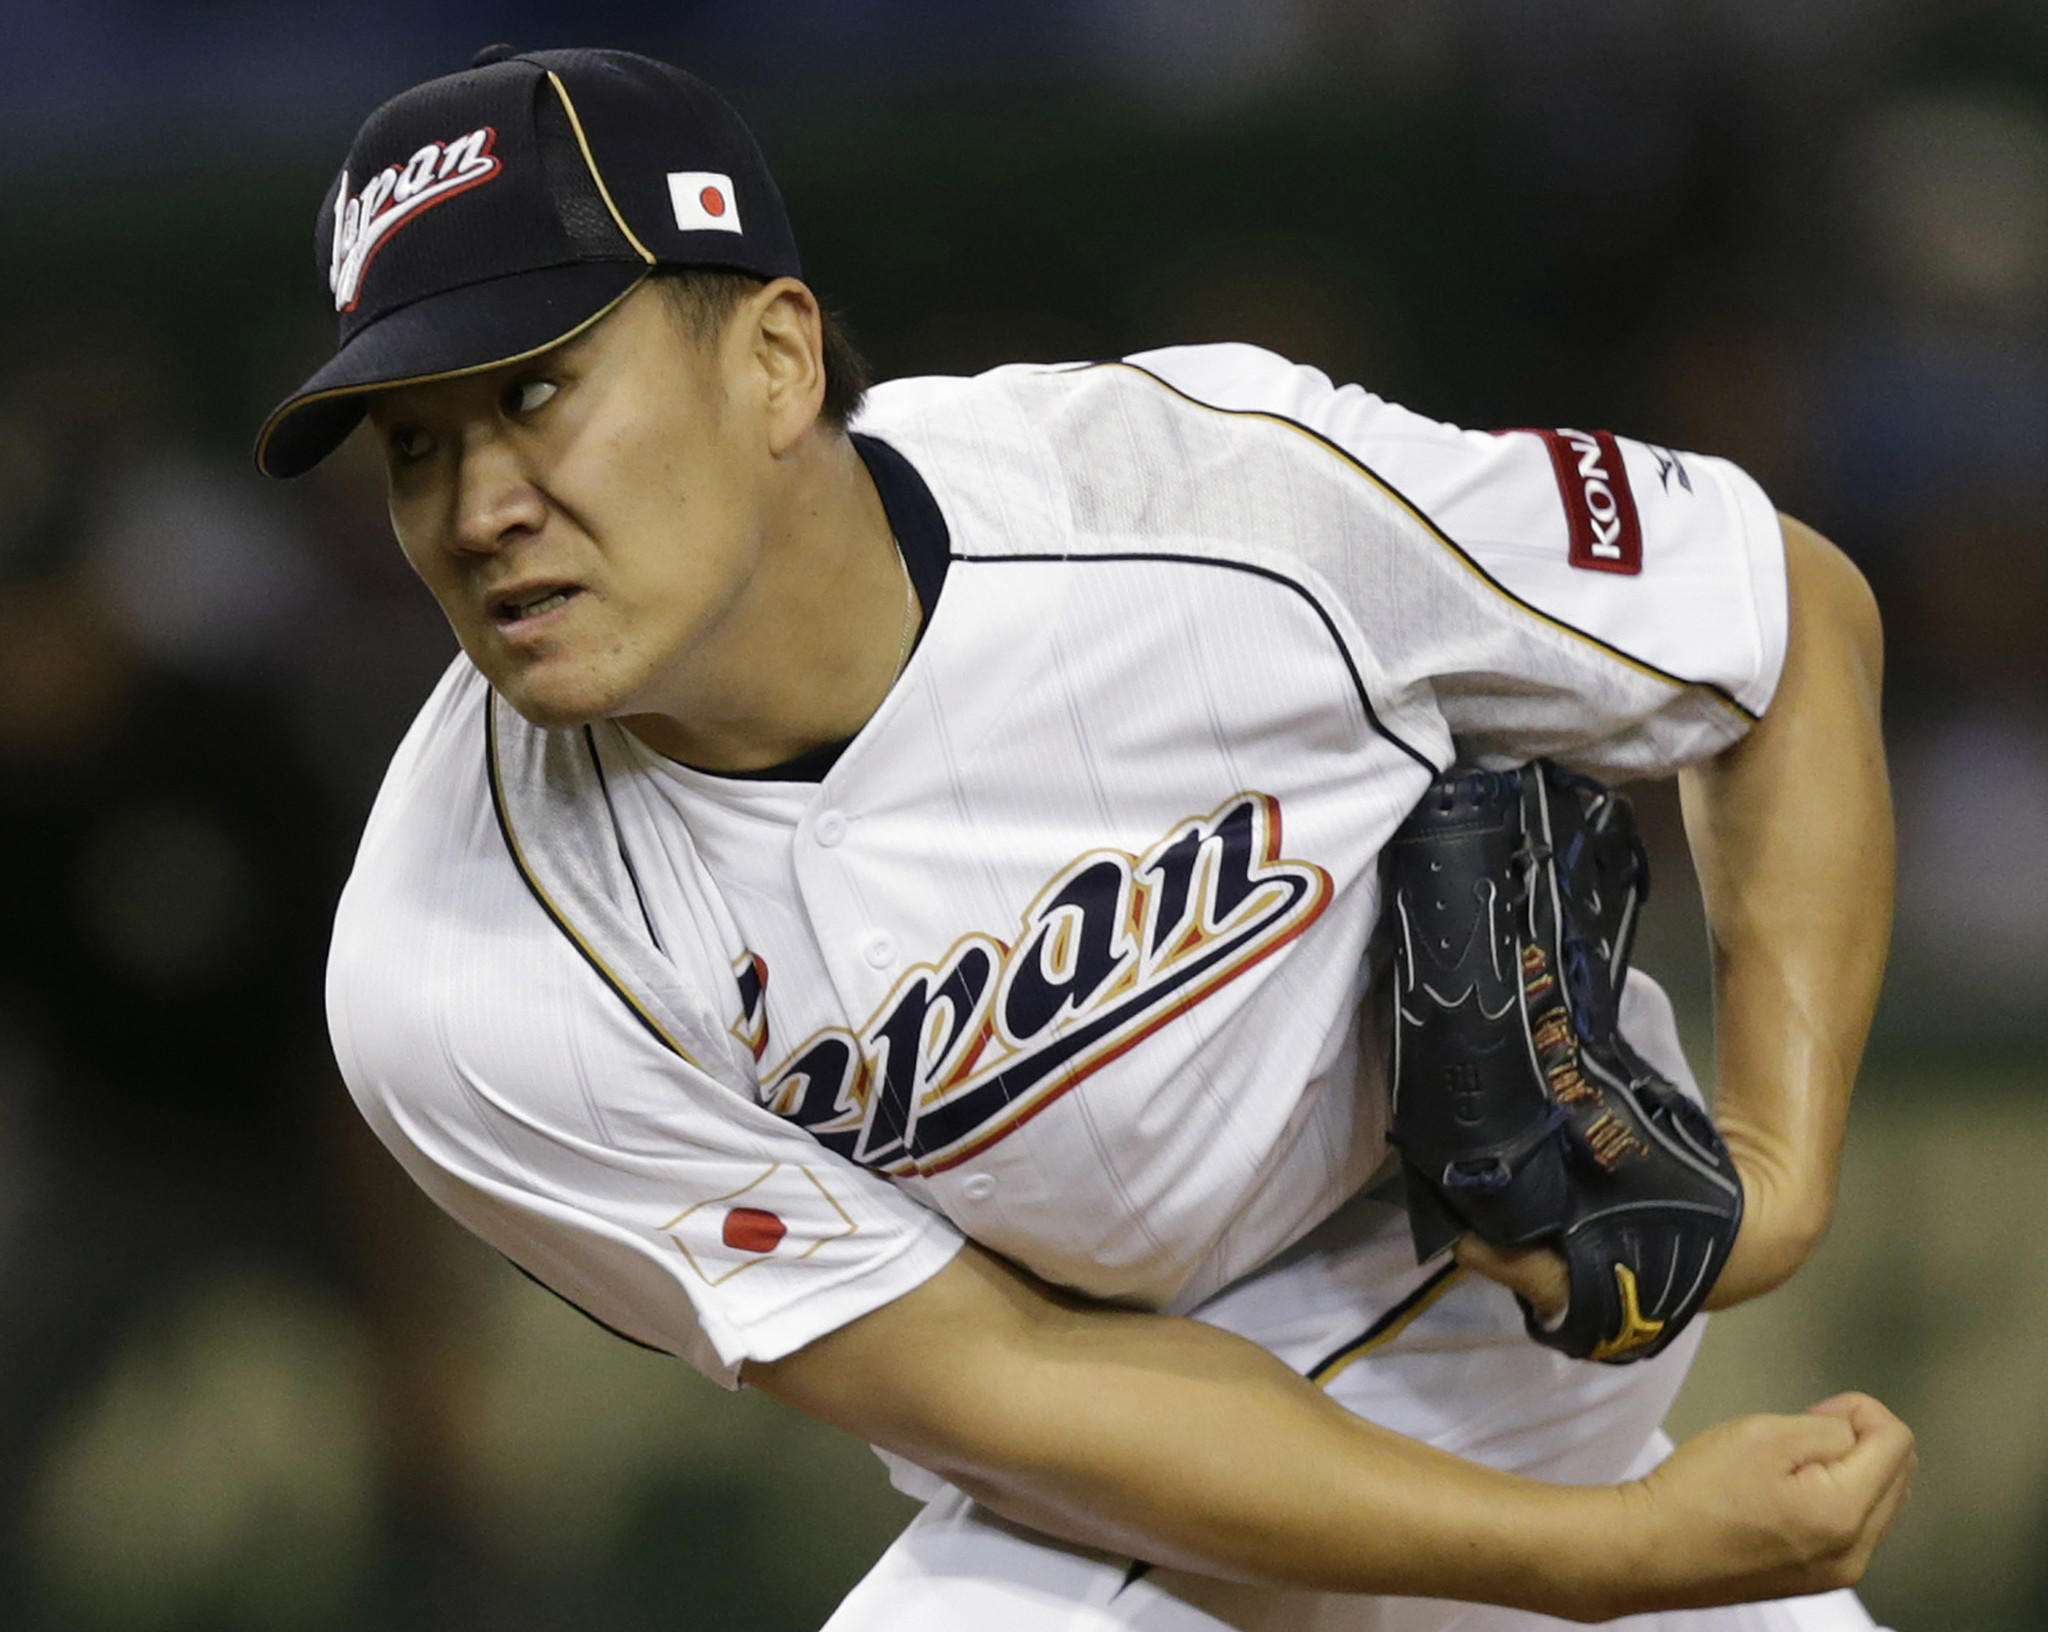 Japan's pitcher Masahiro Tanaka pitches against the Netherlands in the fifth inning at the World Baseball Classic (WBC) second round game in Tokyo in this March 12, 2013 file photo. Tanaka and the New York Yankees agreed to a seven-year, $155 million contract. The 25-year-old right-hander narrowed his choice to the Yankees and Los Angeles Dodgers, who were offering more overall money but not an opt-out clause. His contract with the Yankees includes an escape clause after four years. Picture taken March 12, 2013.